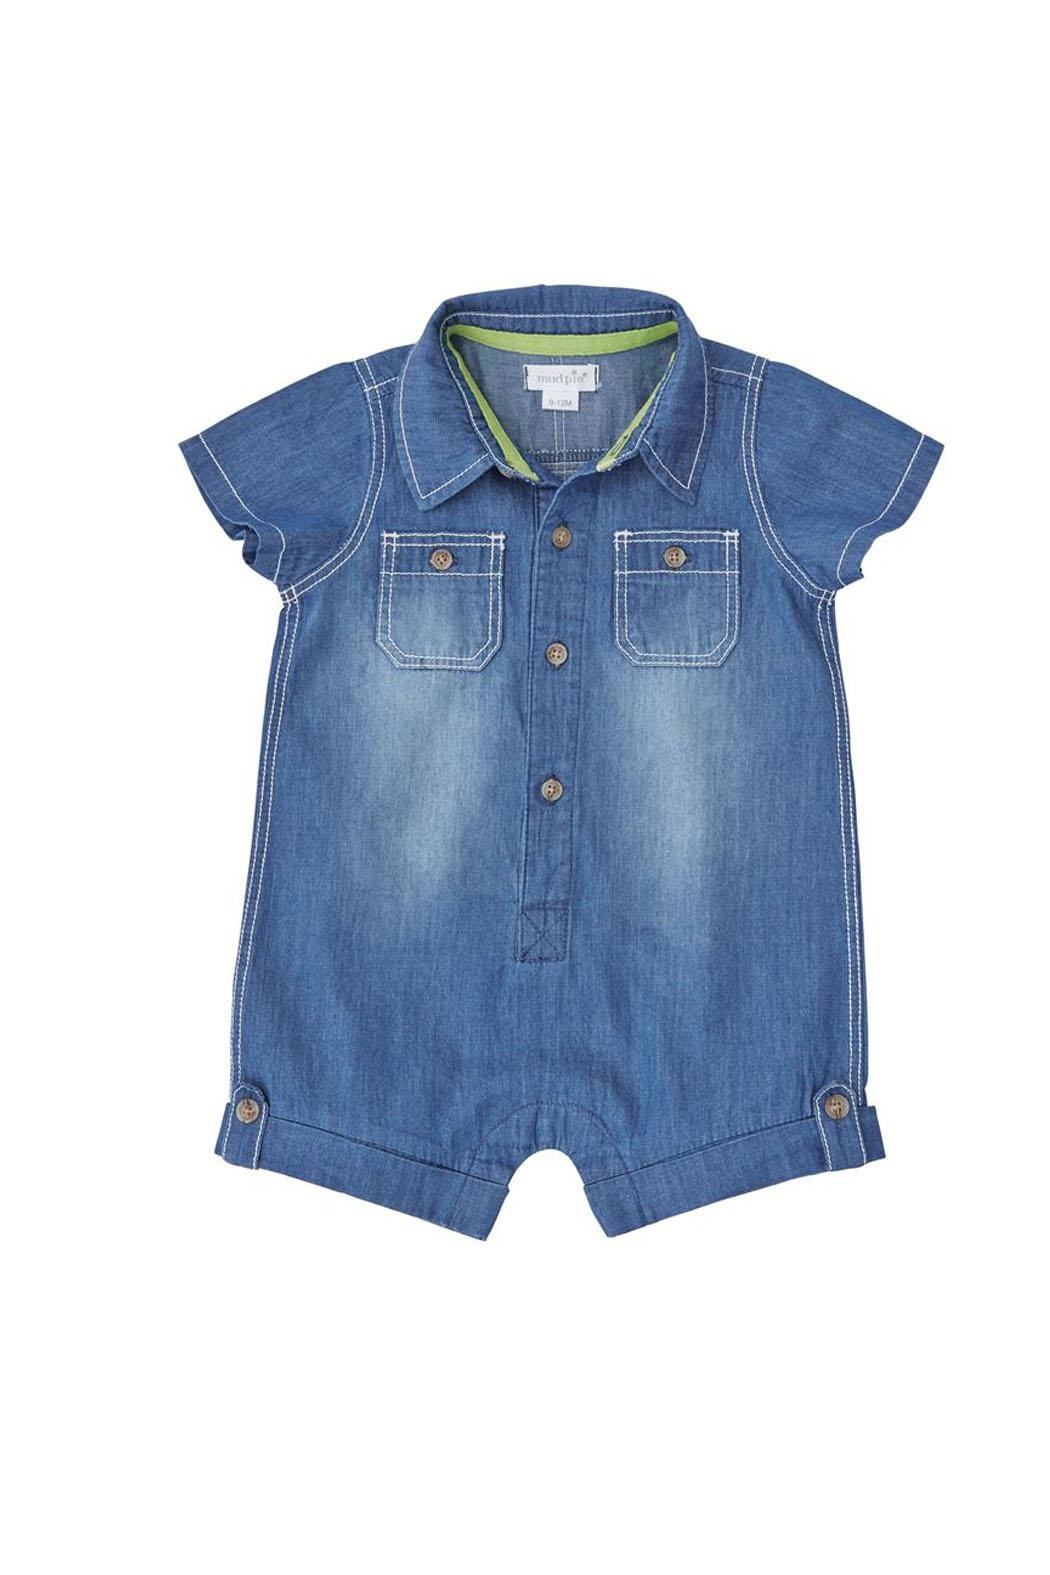 MUDPIE Denim One Piece - Main Image